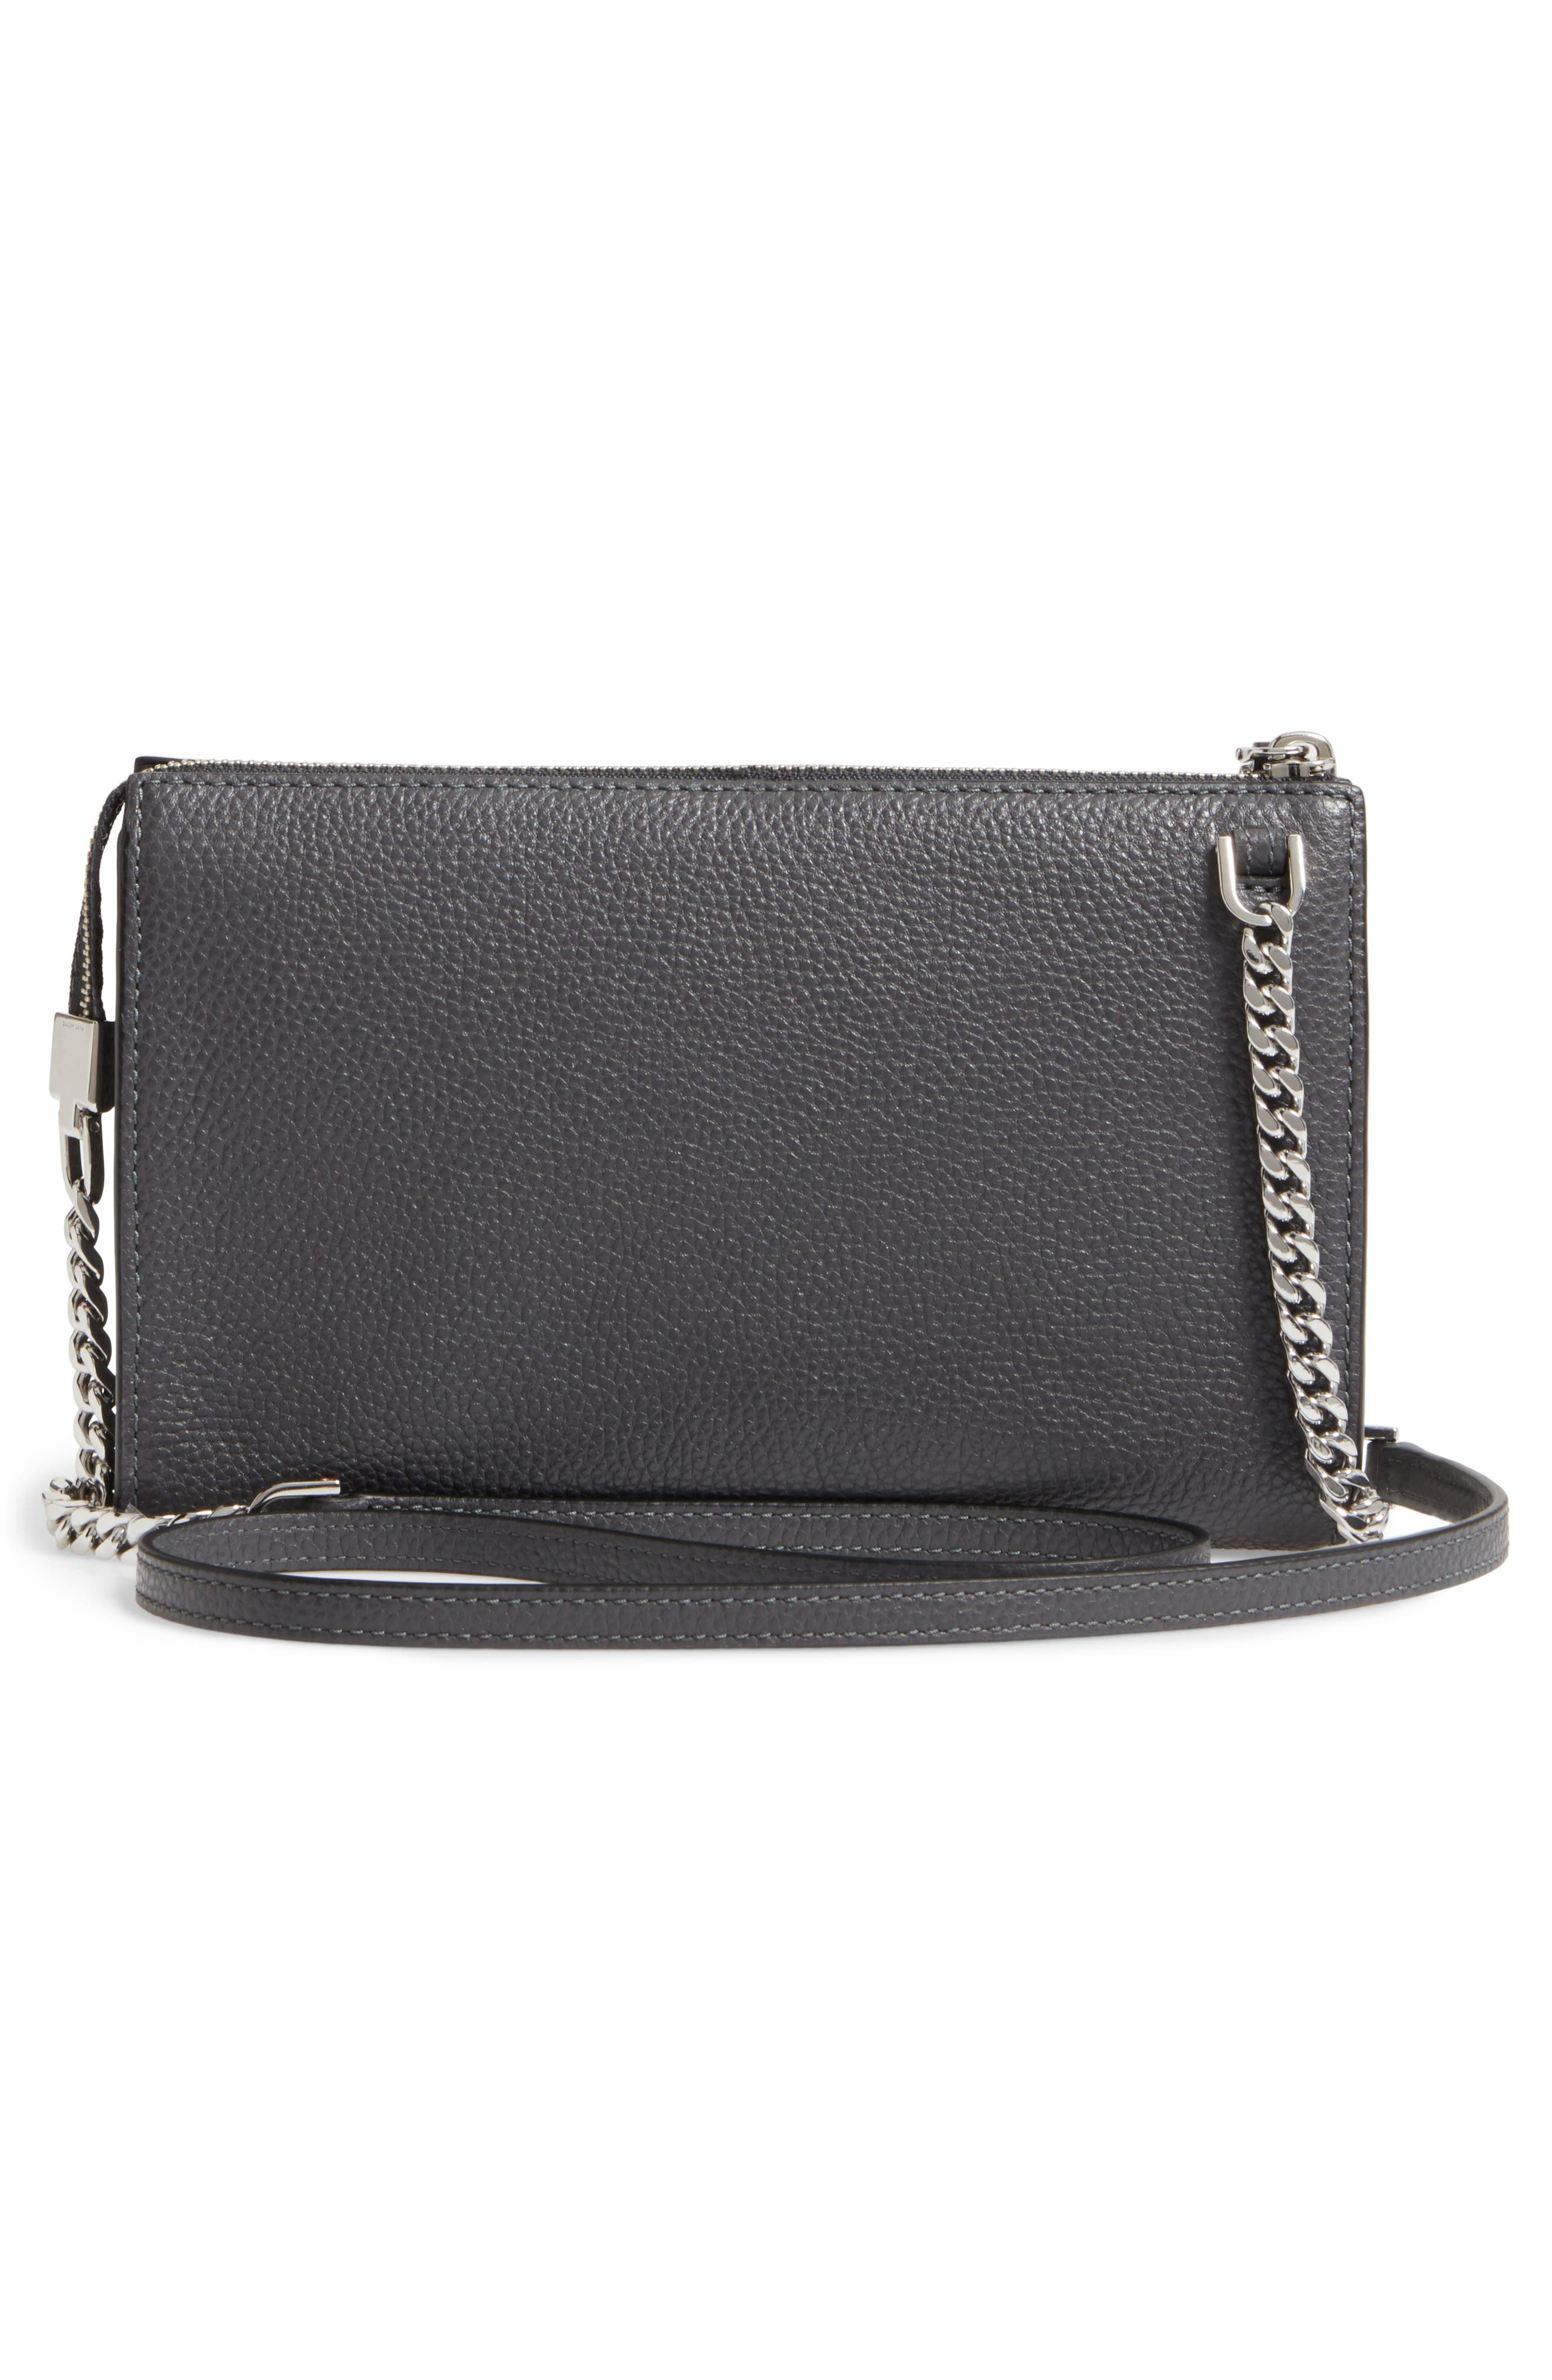 Alternate Image 2  - MARC JACOBS Small Recruit Leather Crossbody Bag